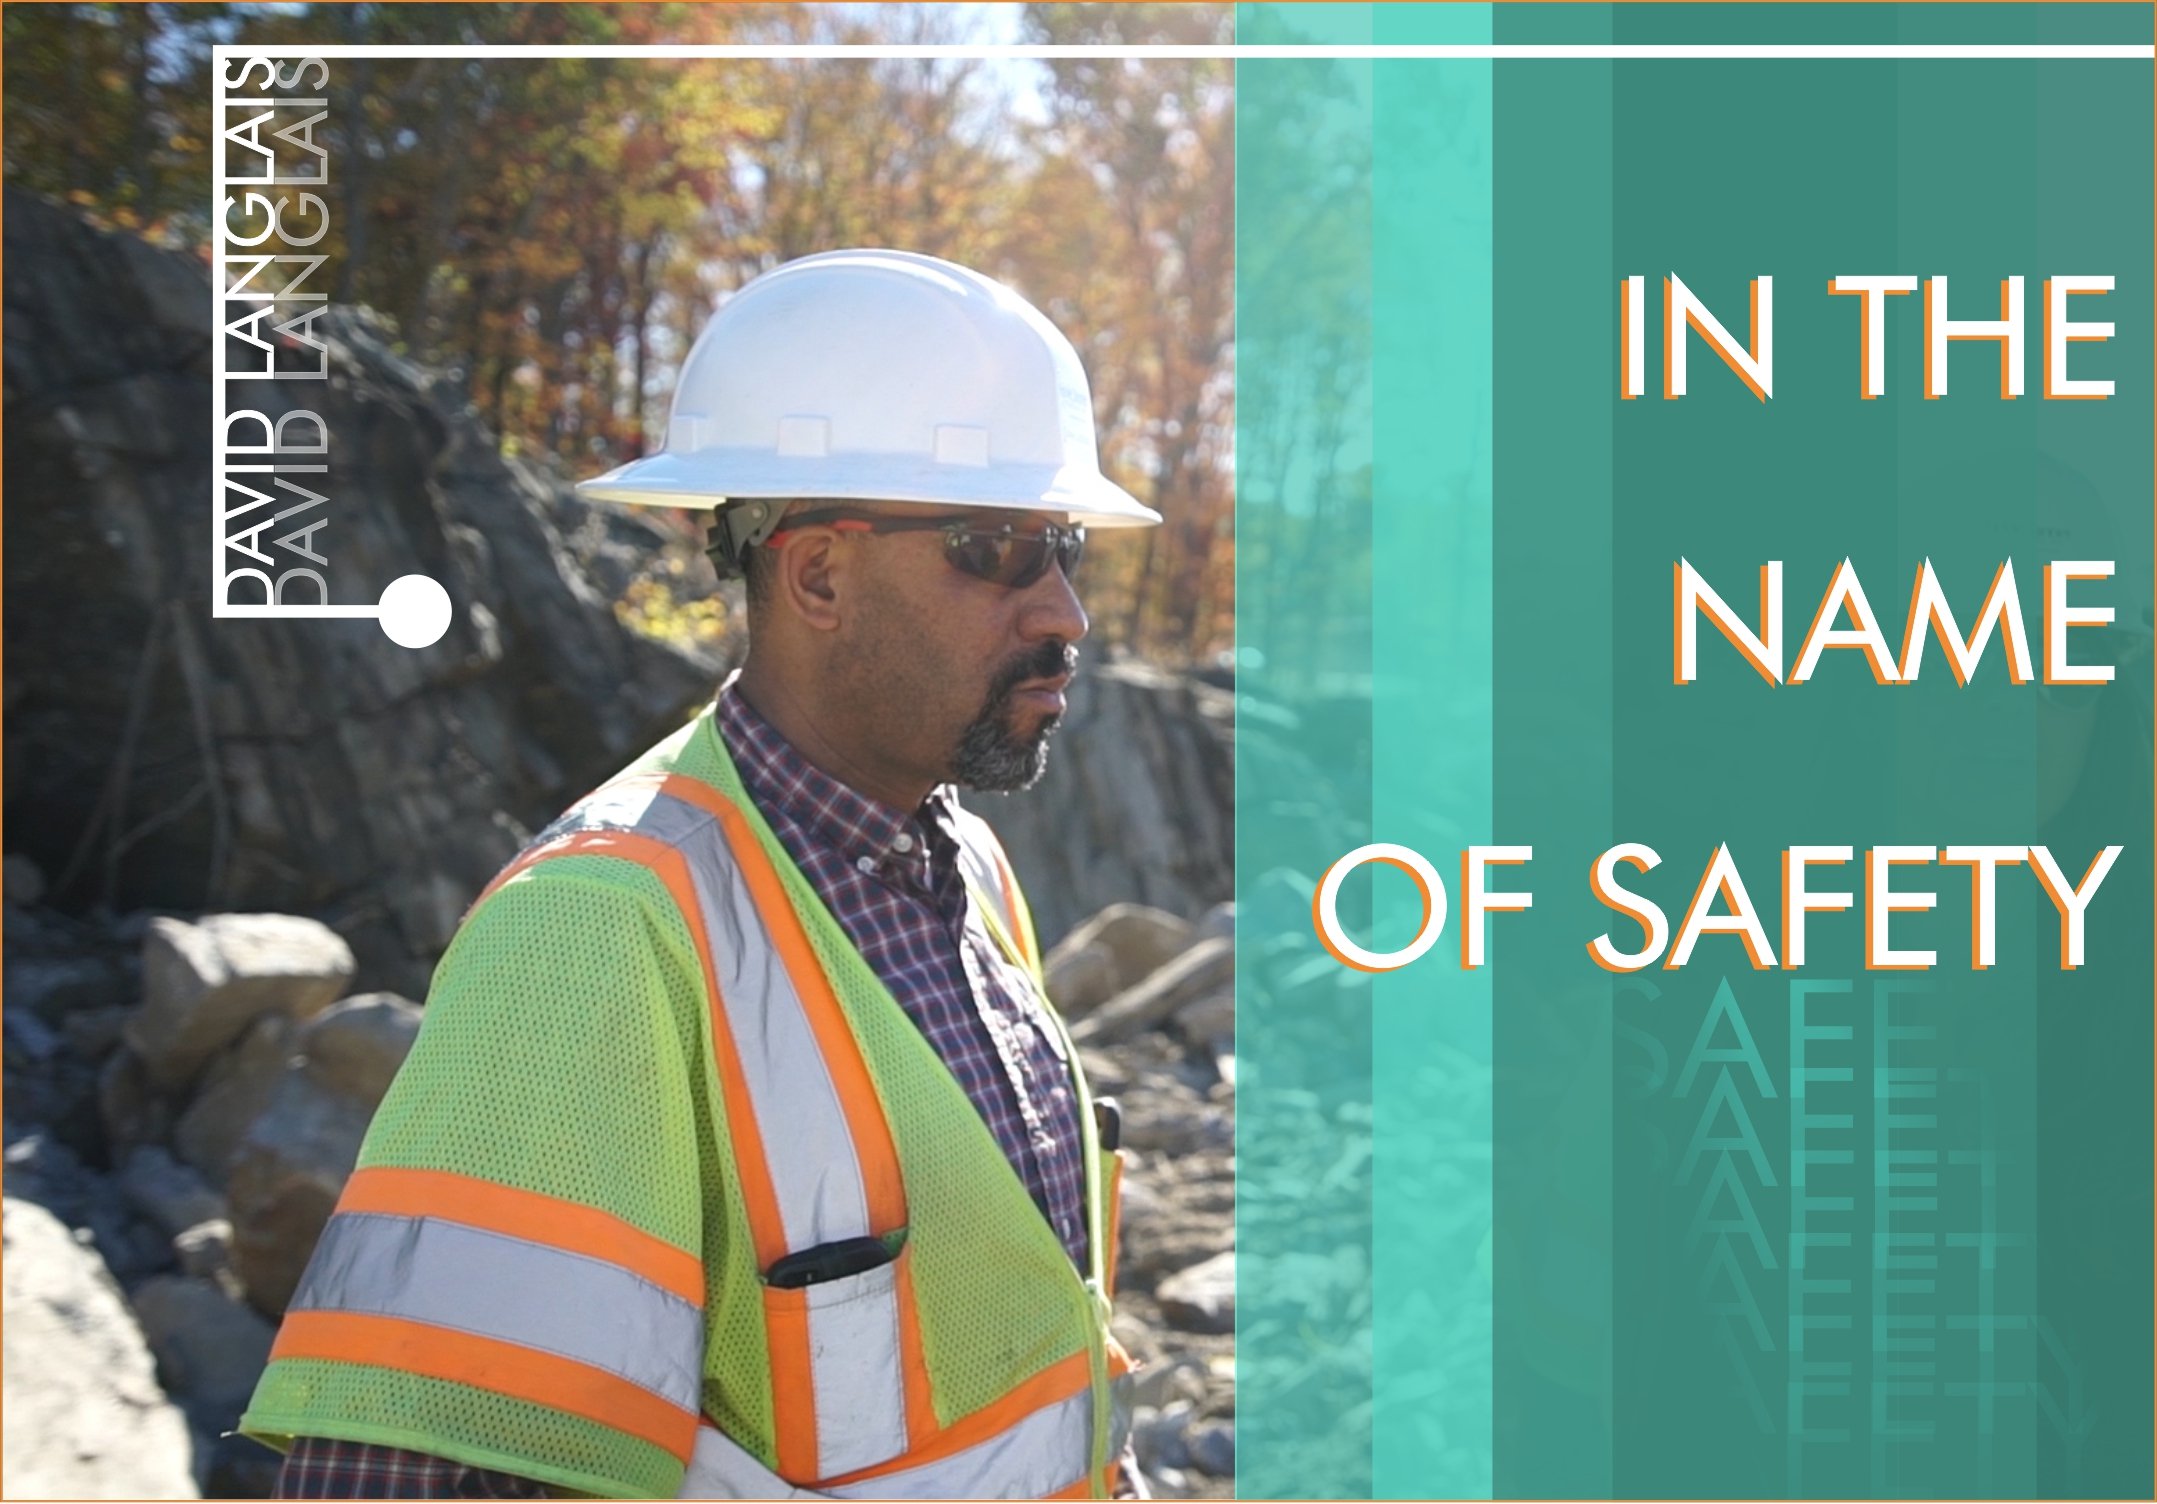 Photo of David Langlais in construction hat and safety vest with article title